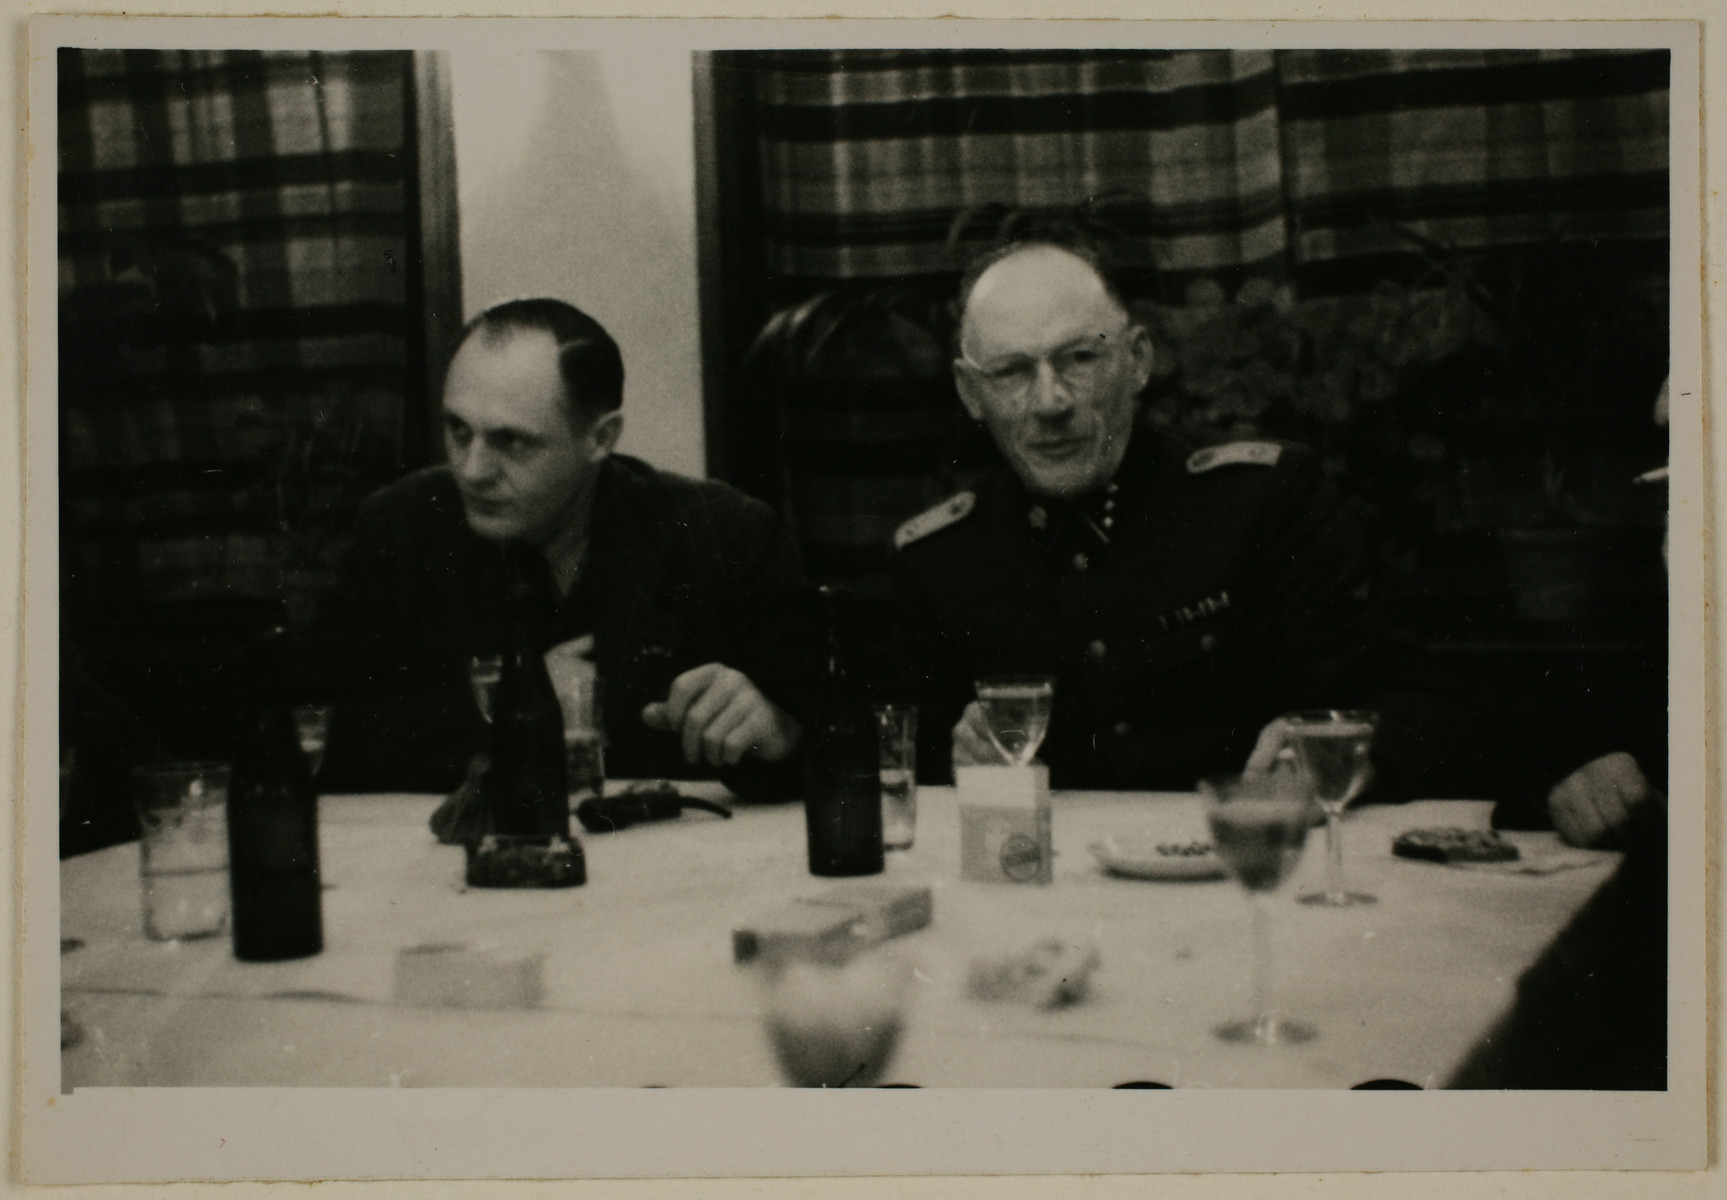 Two SS officers gather for drinks in a hunting lodge.  On the right is Heinrich Josten, and on the left is Eduard Wirths.